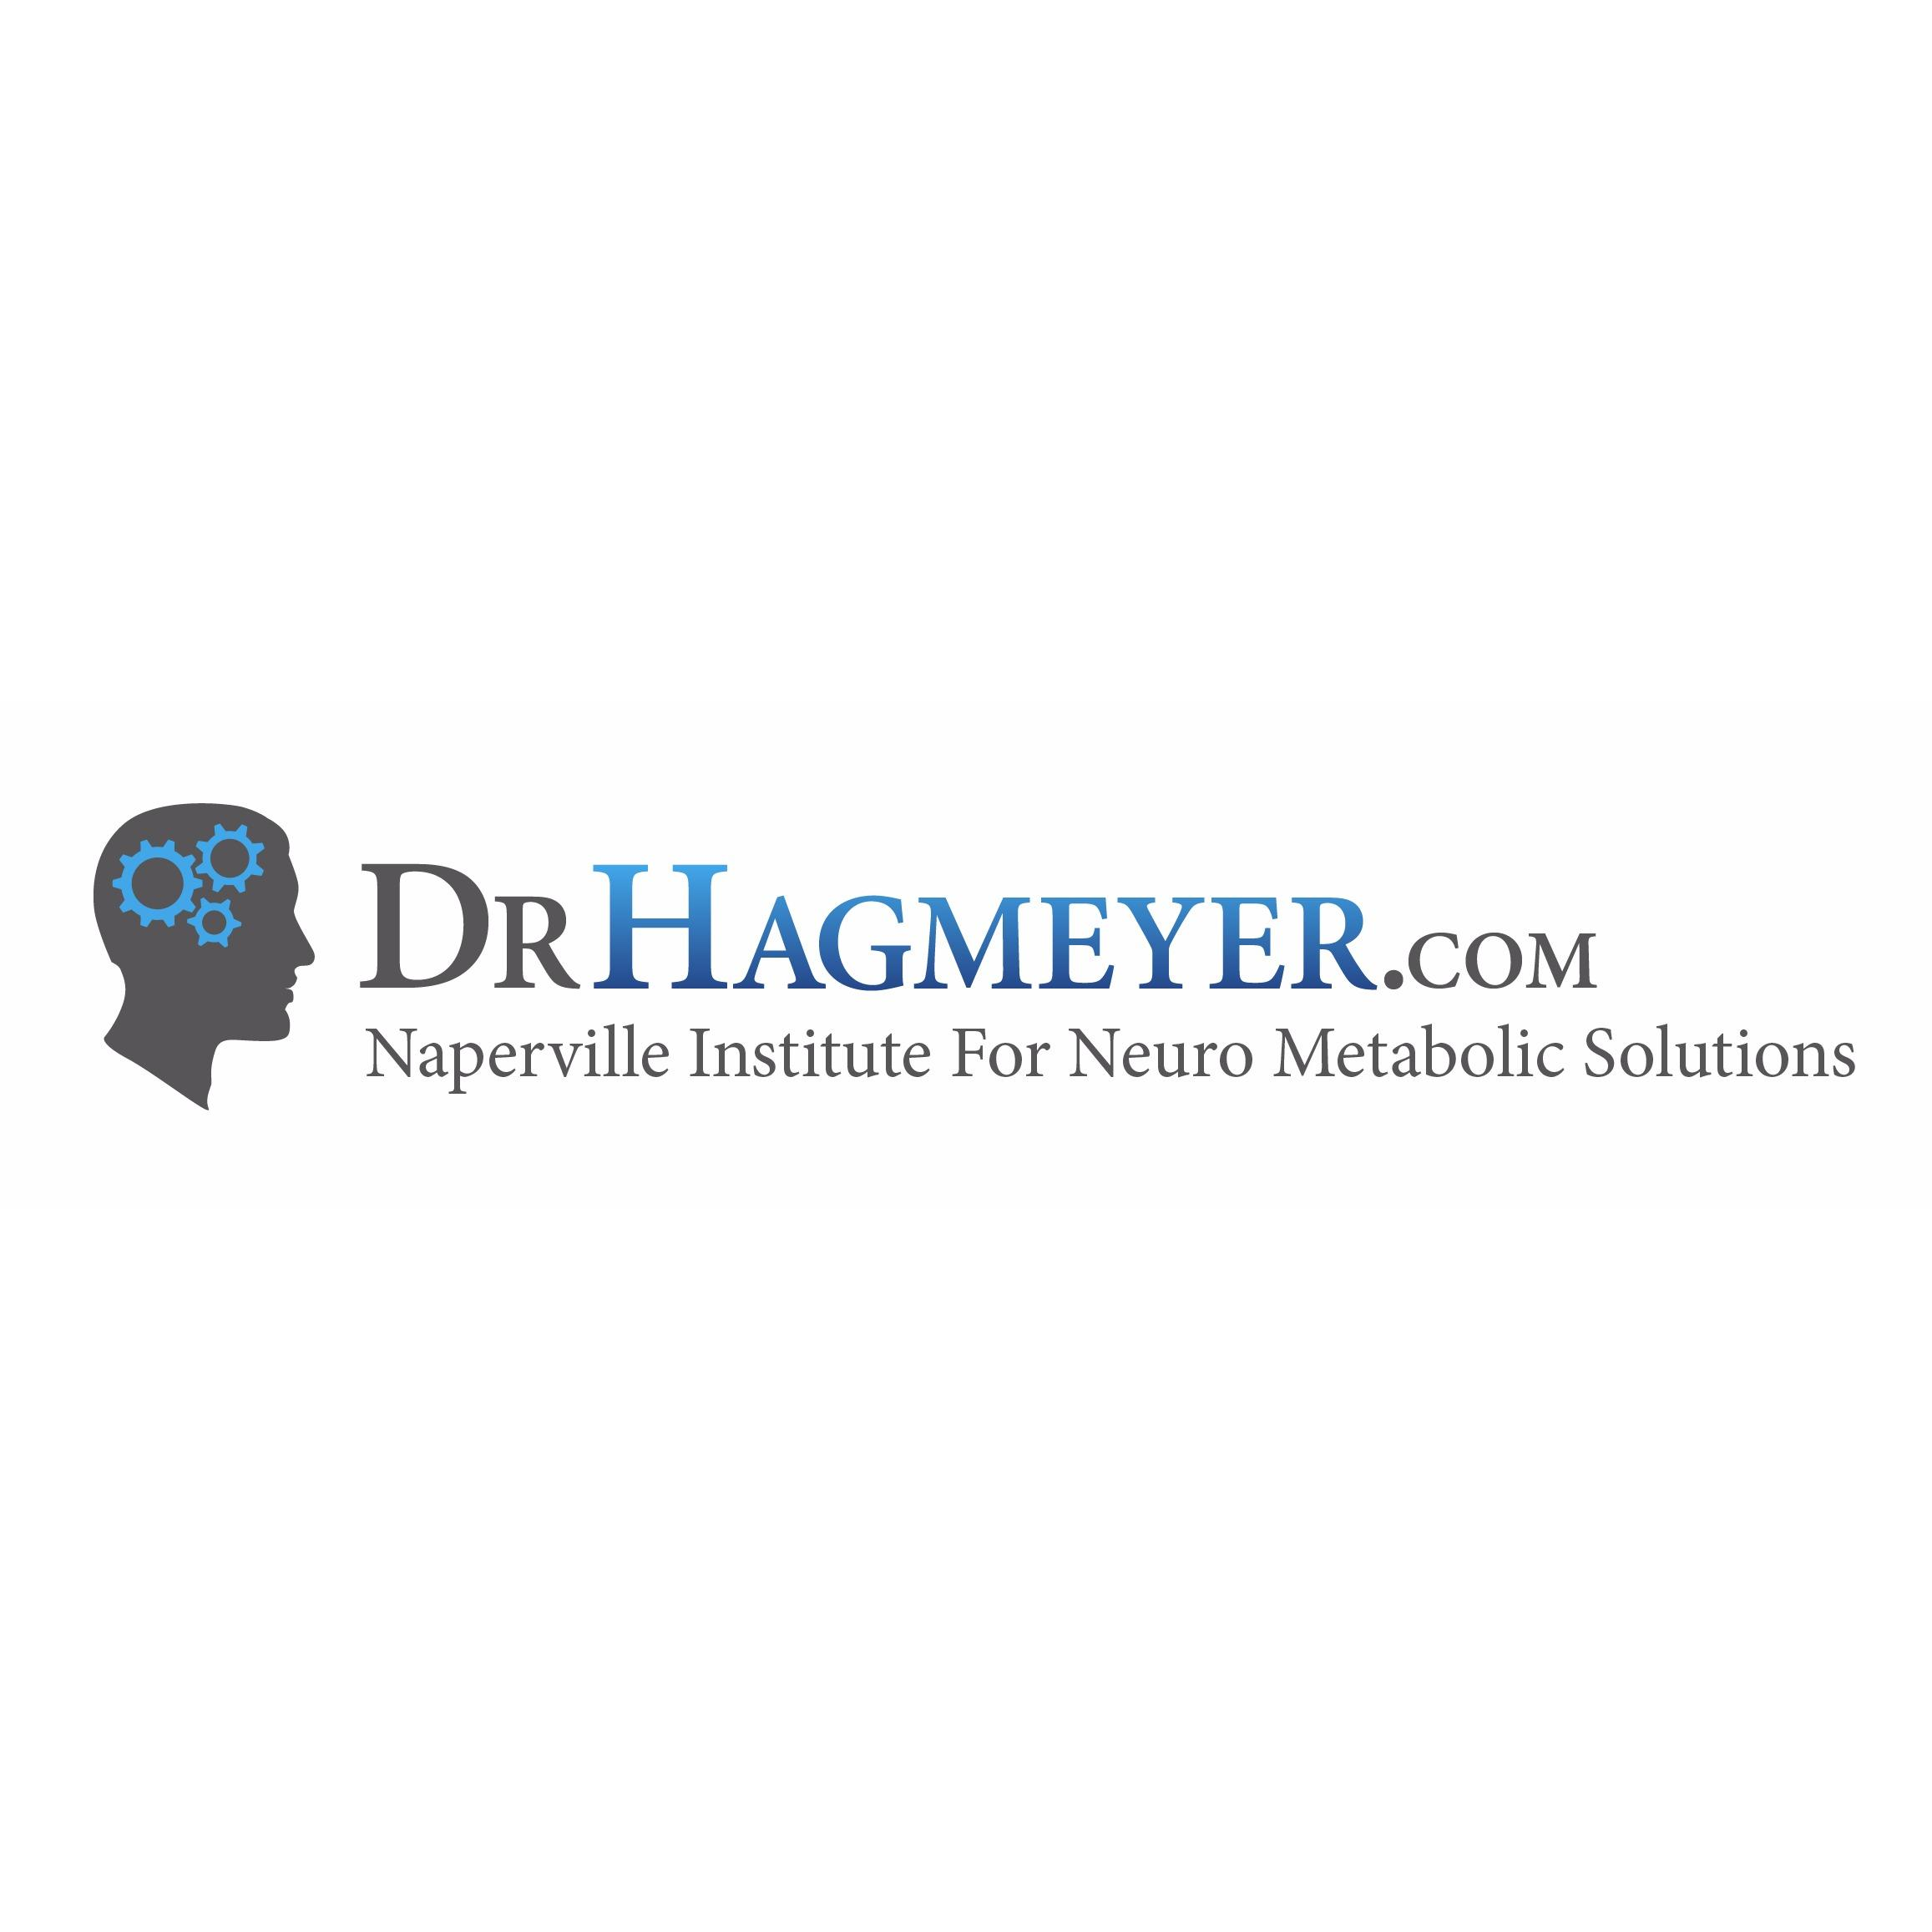 Naperville Institute for NeuroMetabolic Solutions: Dr. Richard Hagmeyer